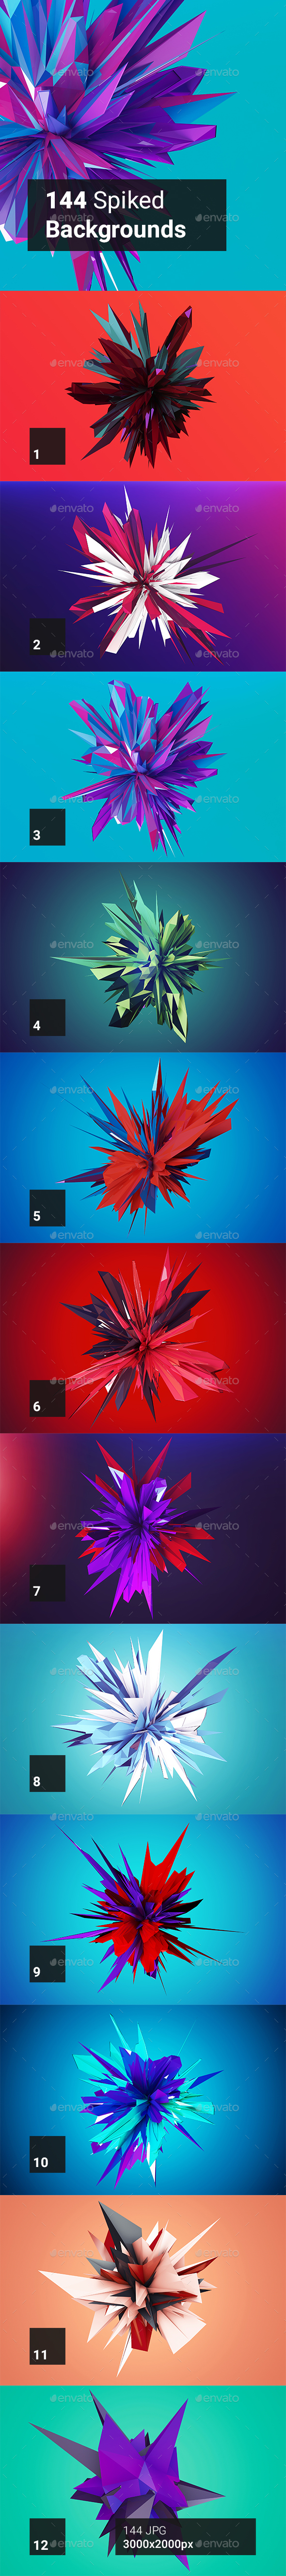 144 Spiked Backgrounds